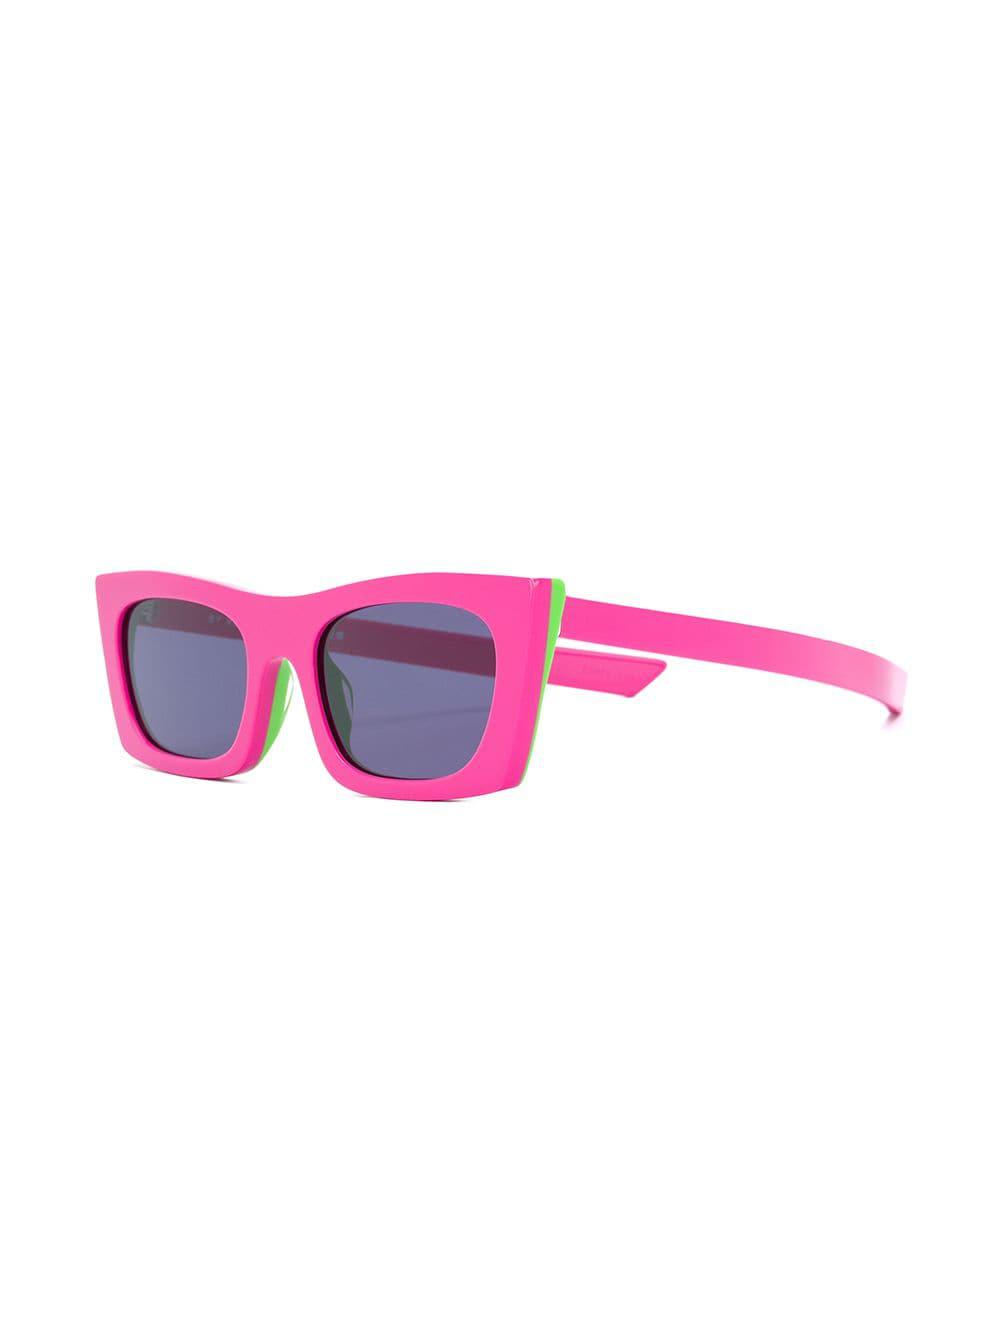 d396260ec1 Lyst - Retrosuperfuture Fred Square Frame Sunglasses in Pink - Save 2%